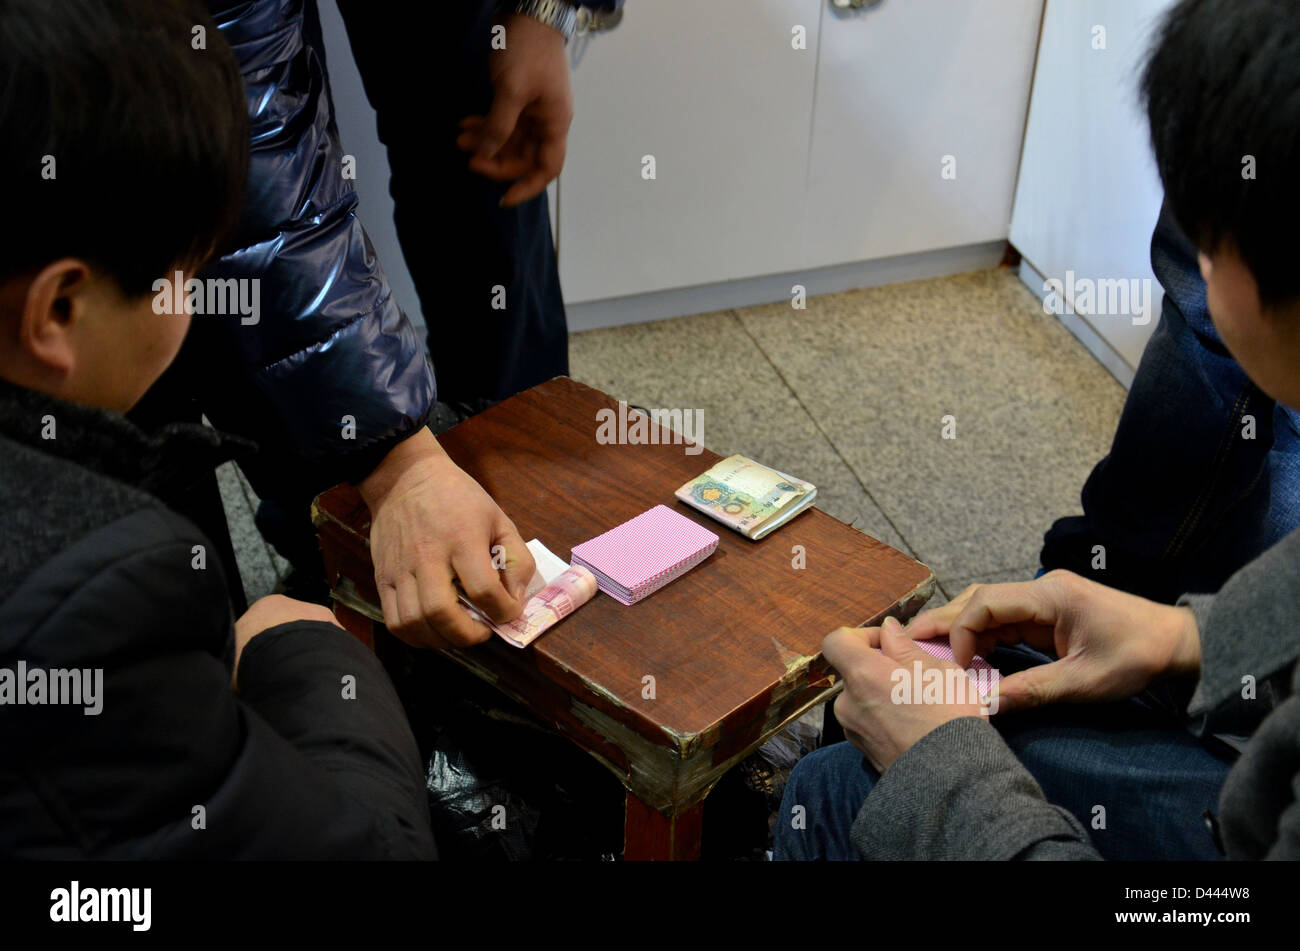 Playing hands, playing cards: gambling - Stock Image